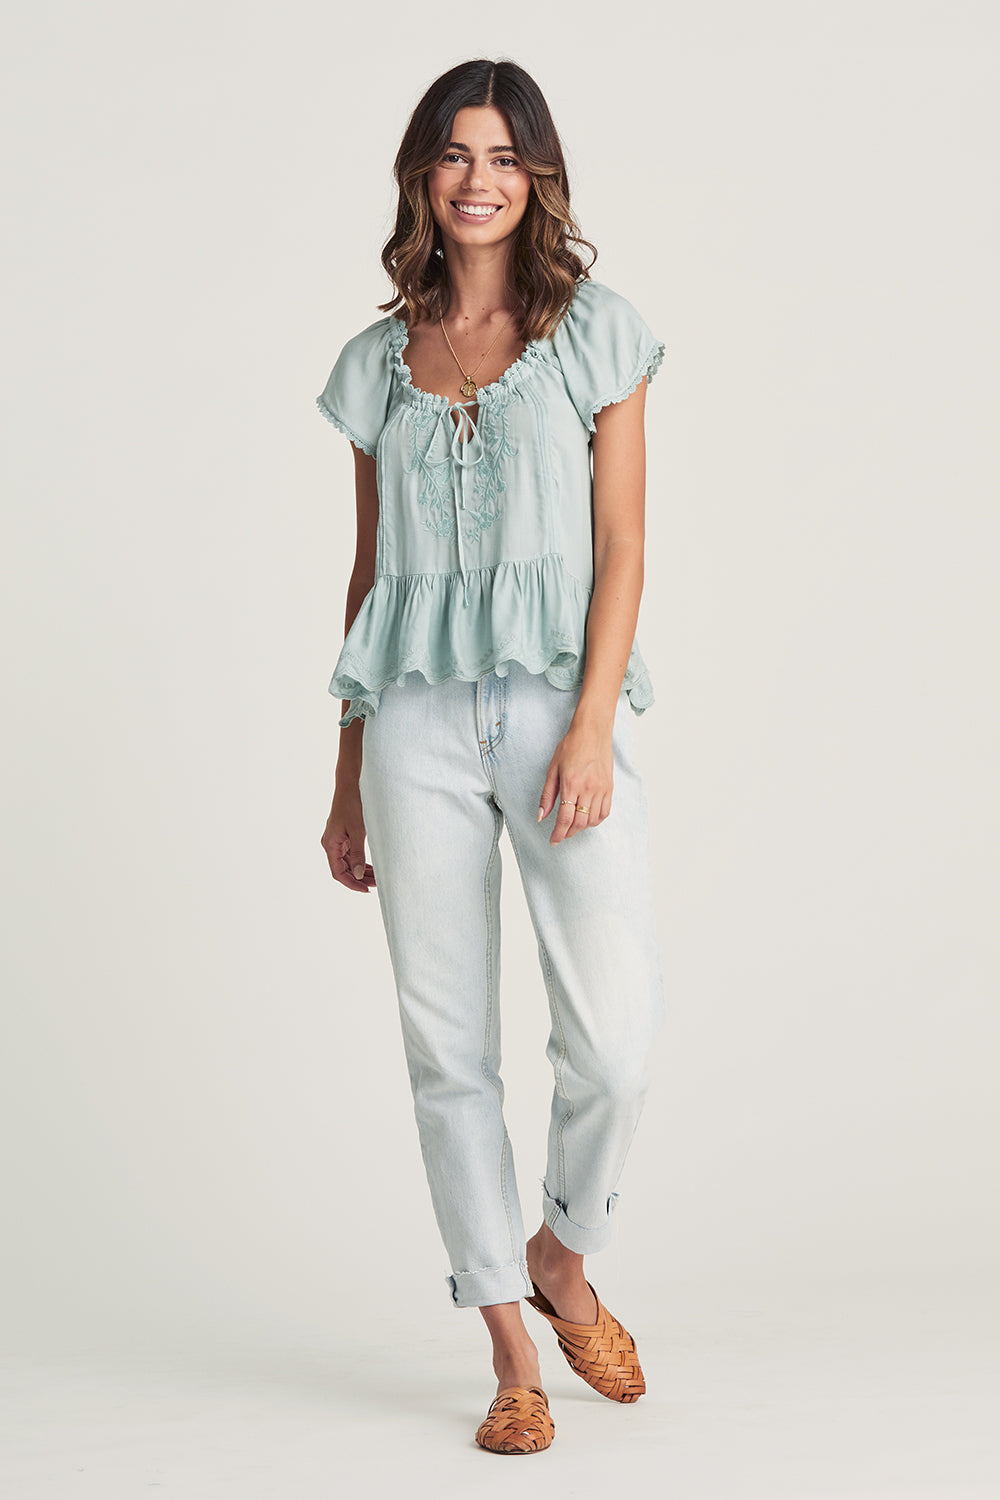 Dreamers Blouse in Misty Blue